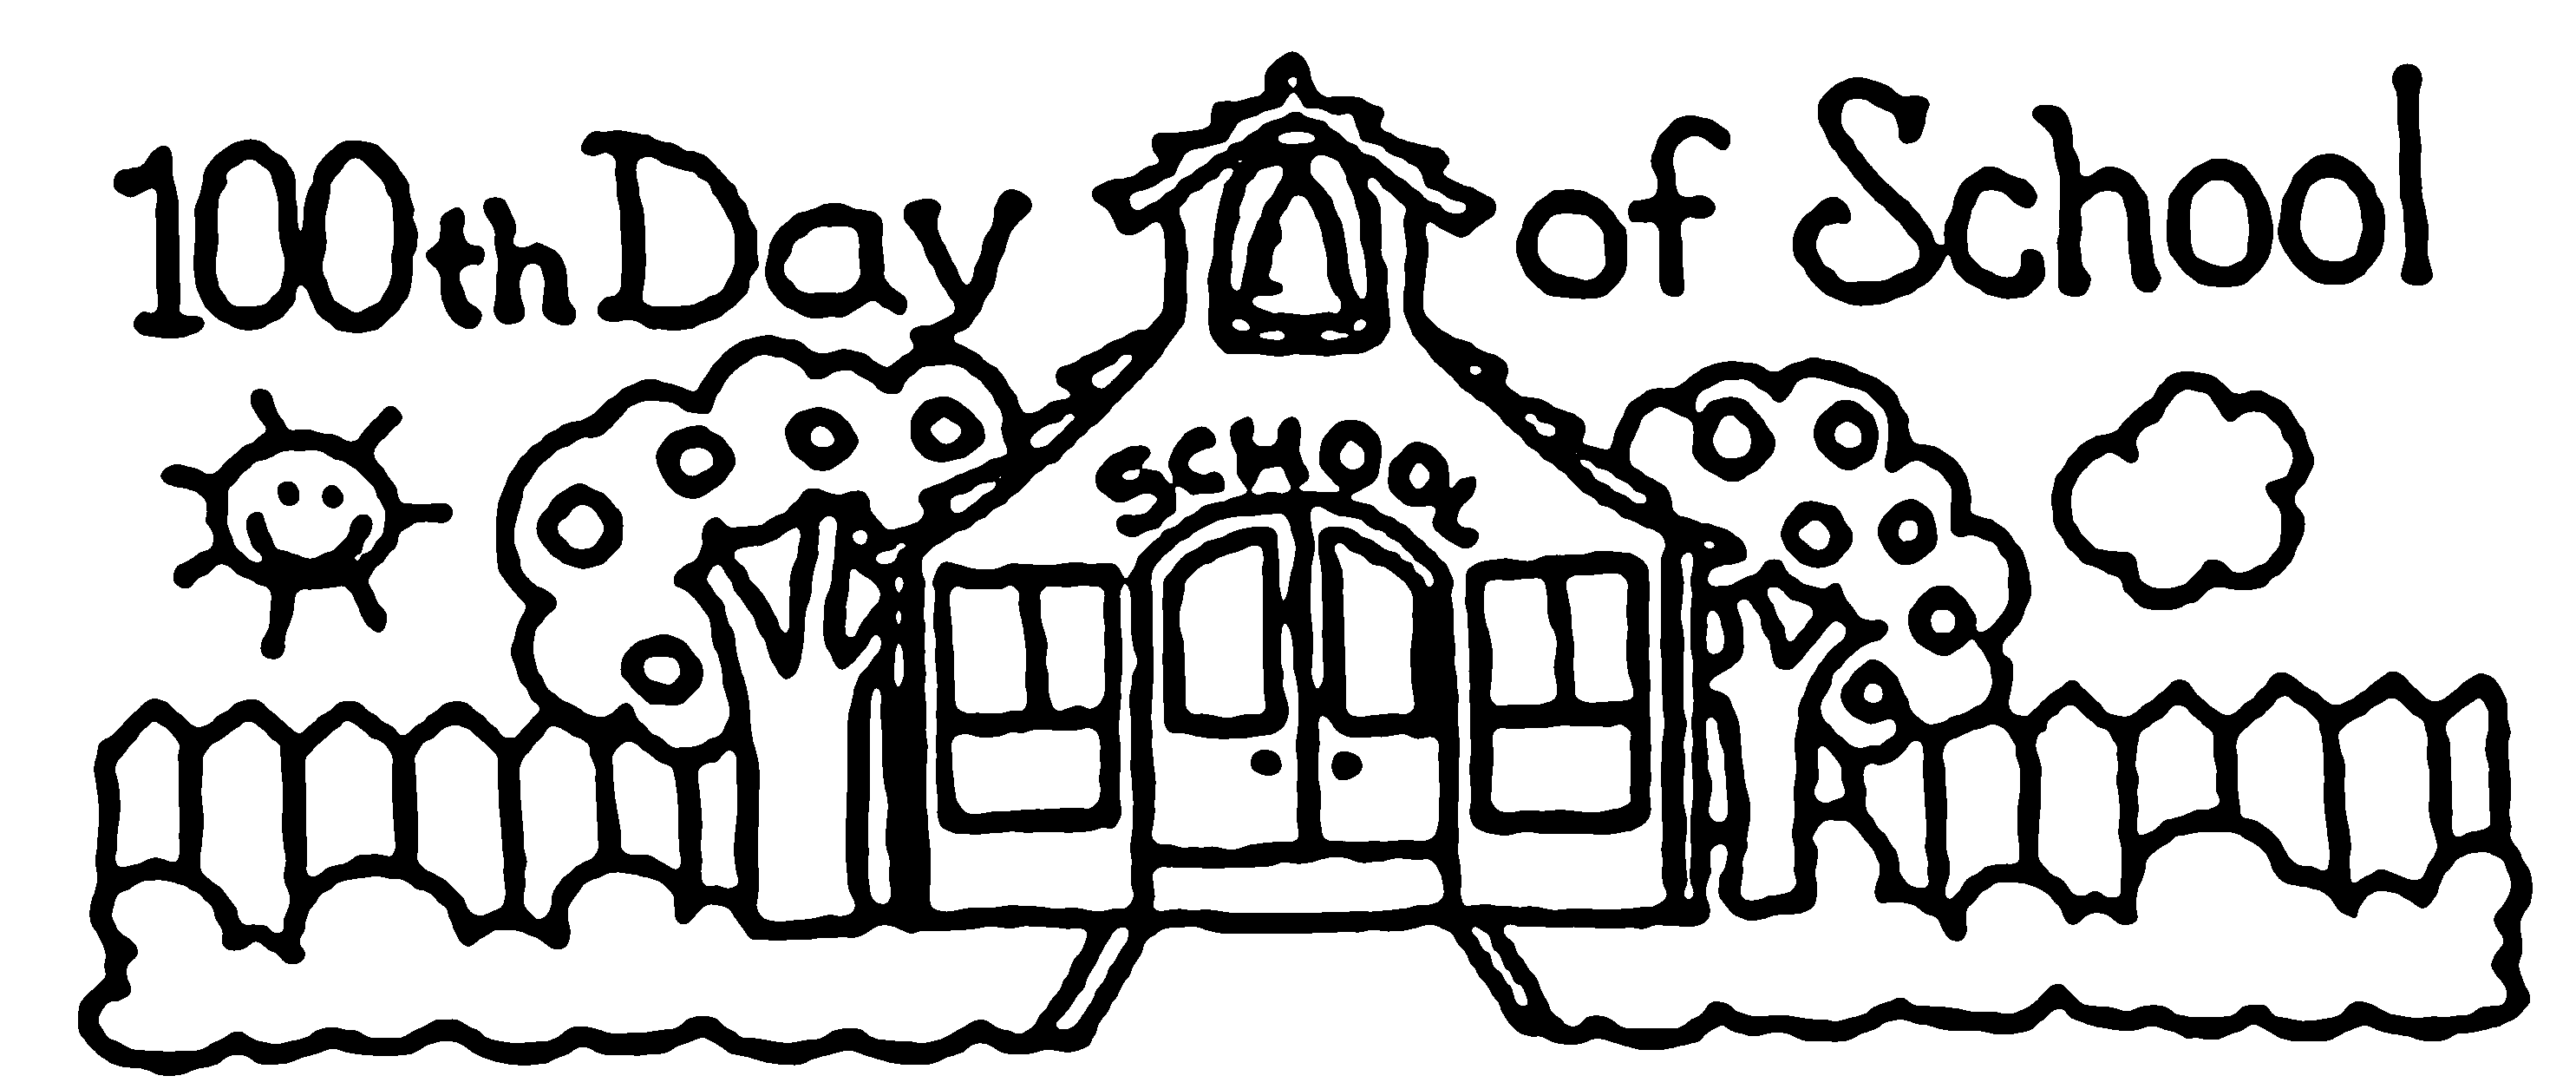 100th-day-of-school-coloring-page-0028-q1